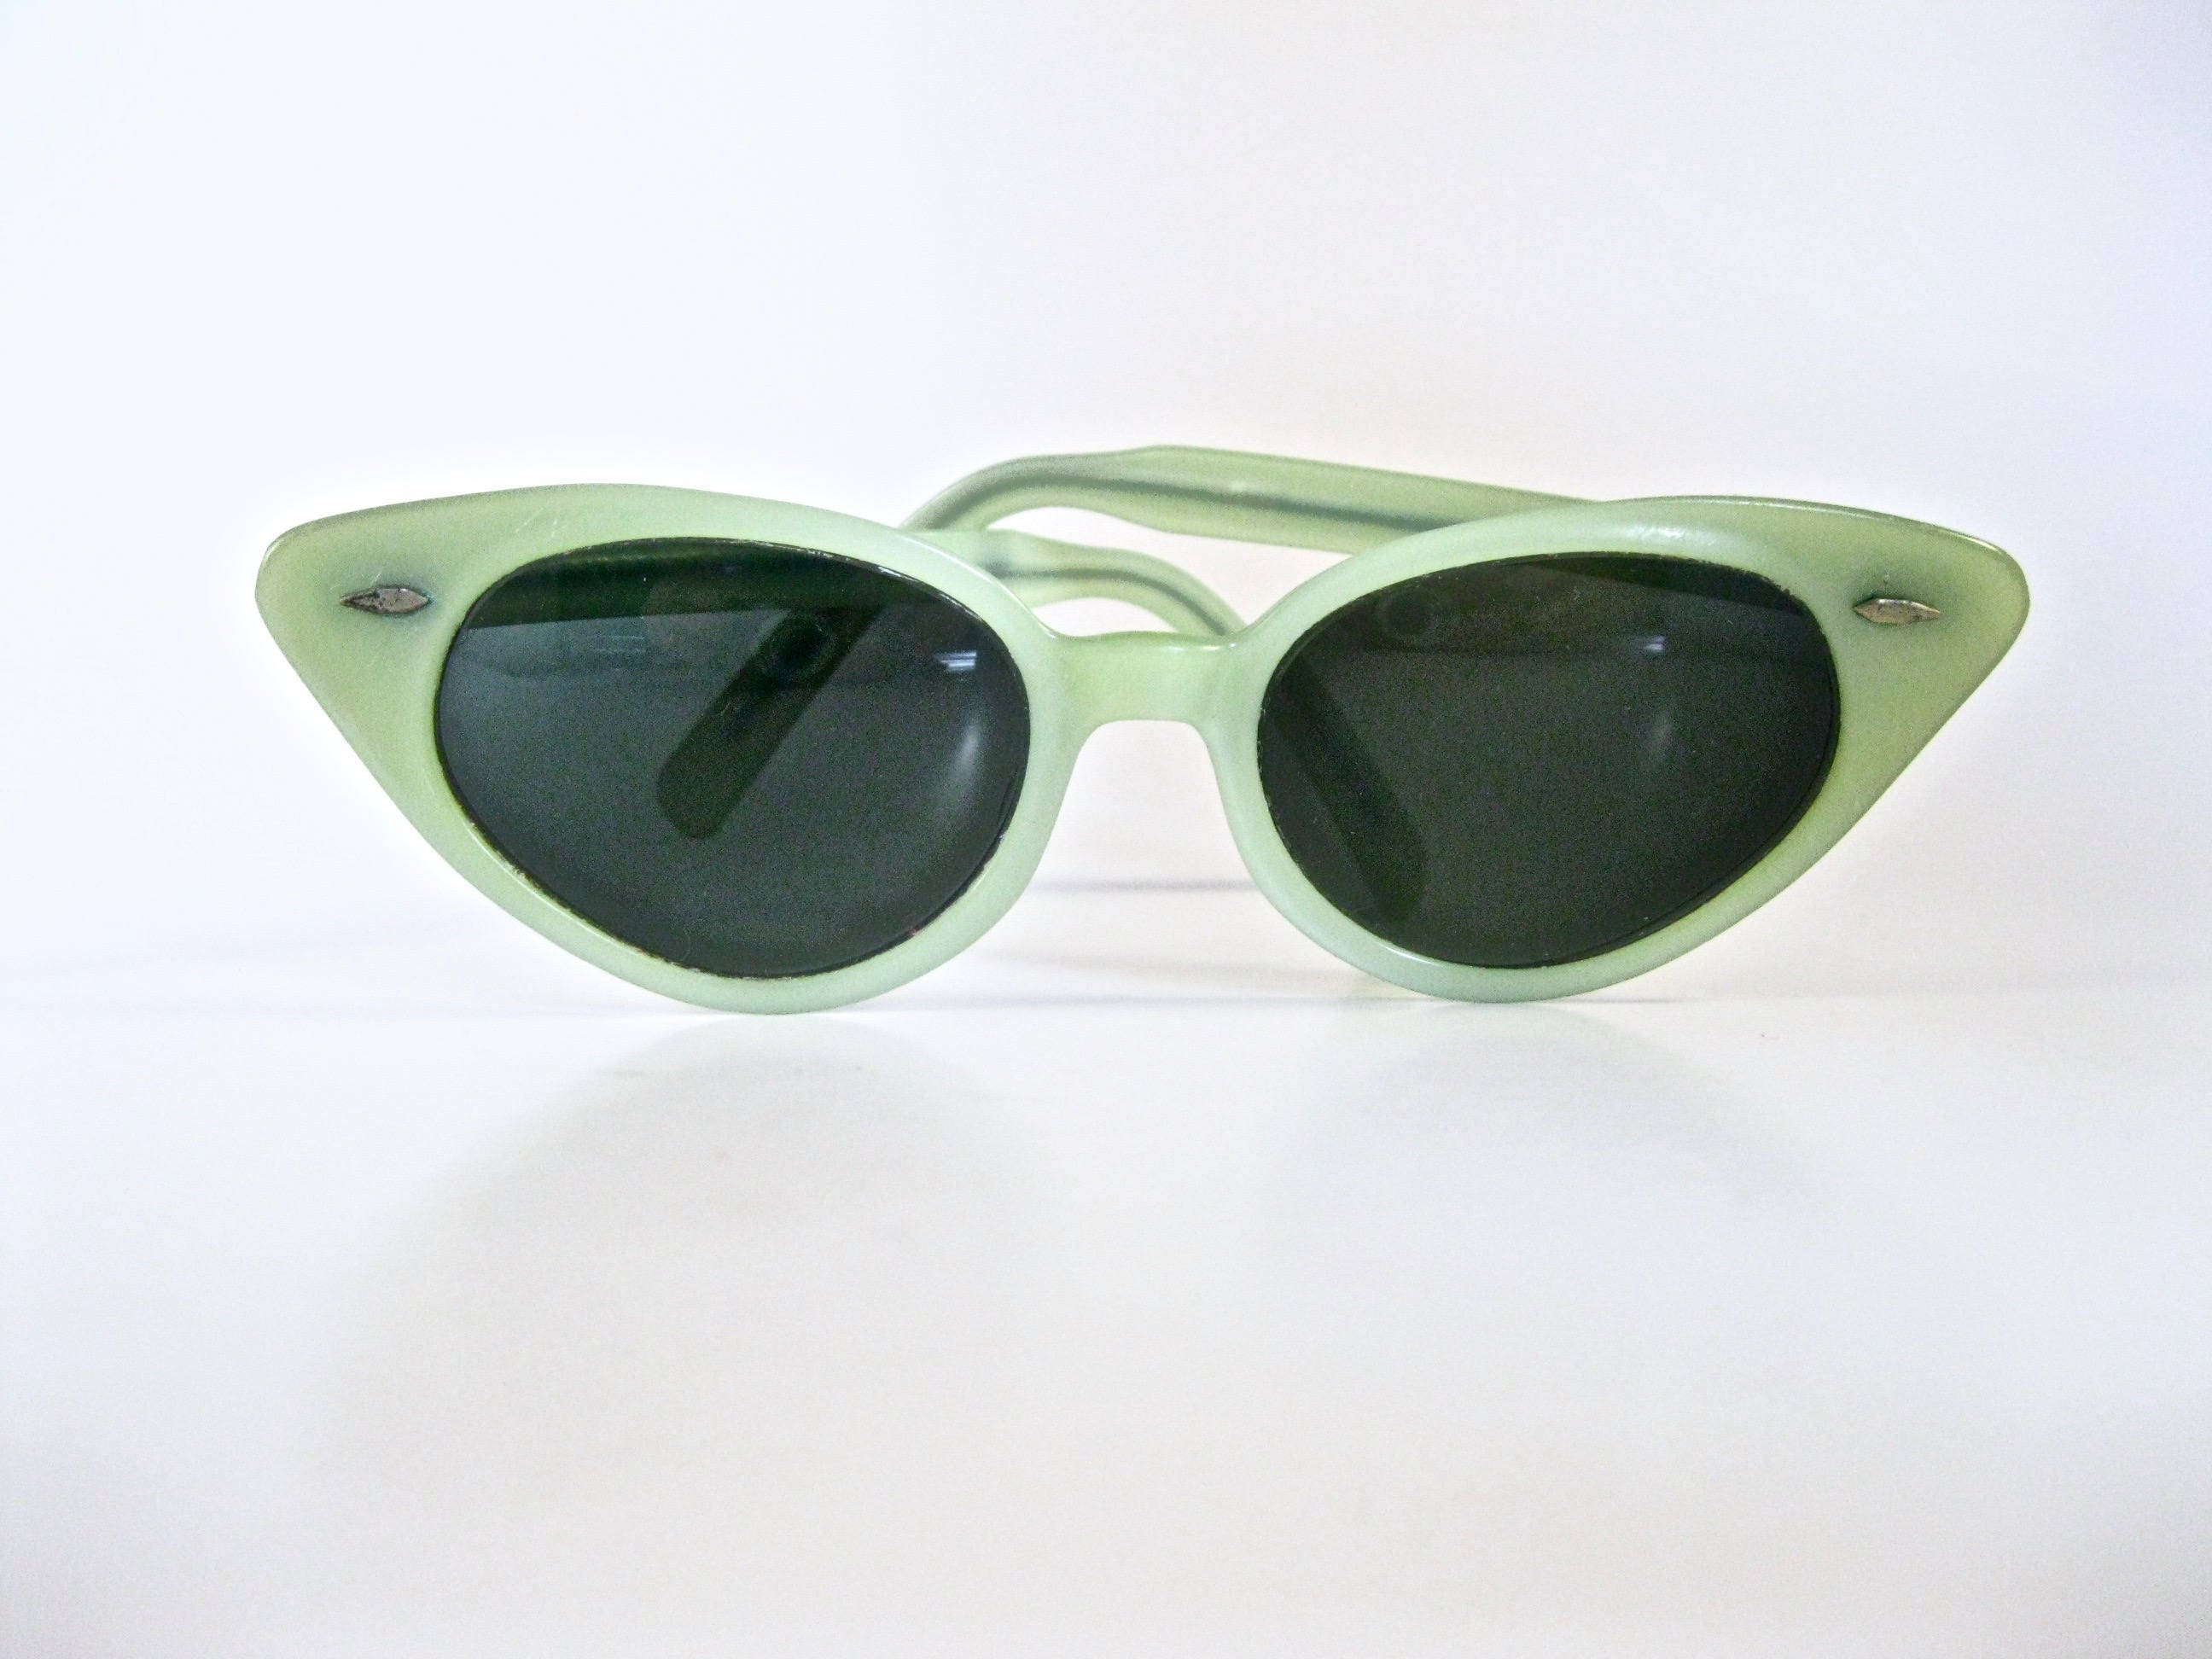 7509a3018d43 Ray-Ban vintage cat eye glasses. Jade mint green. Collectable 1950s Ray-